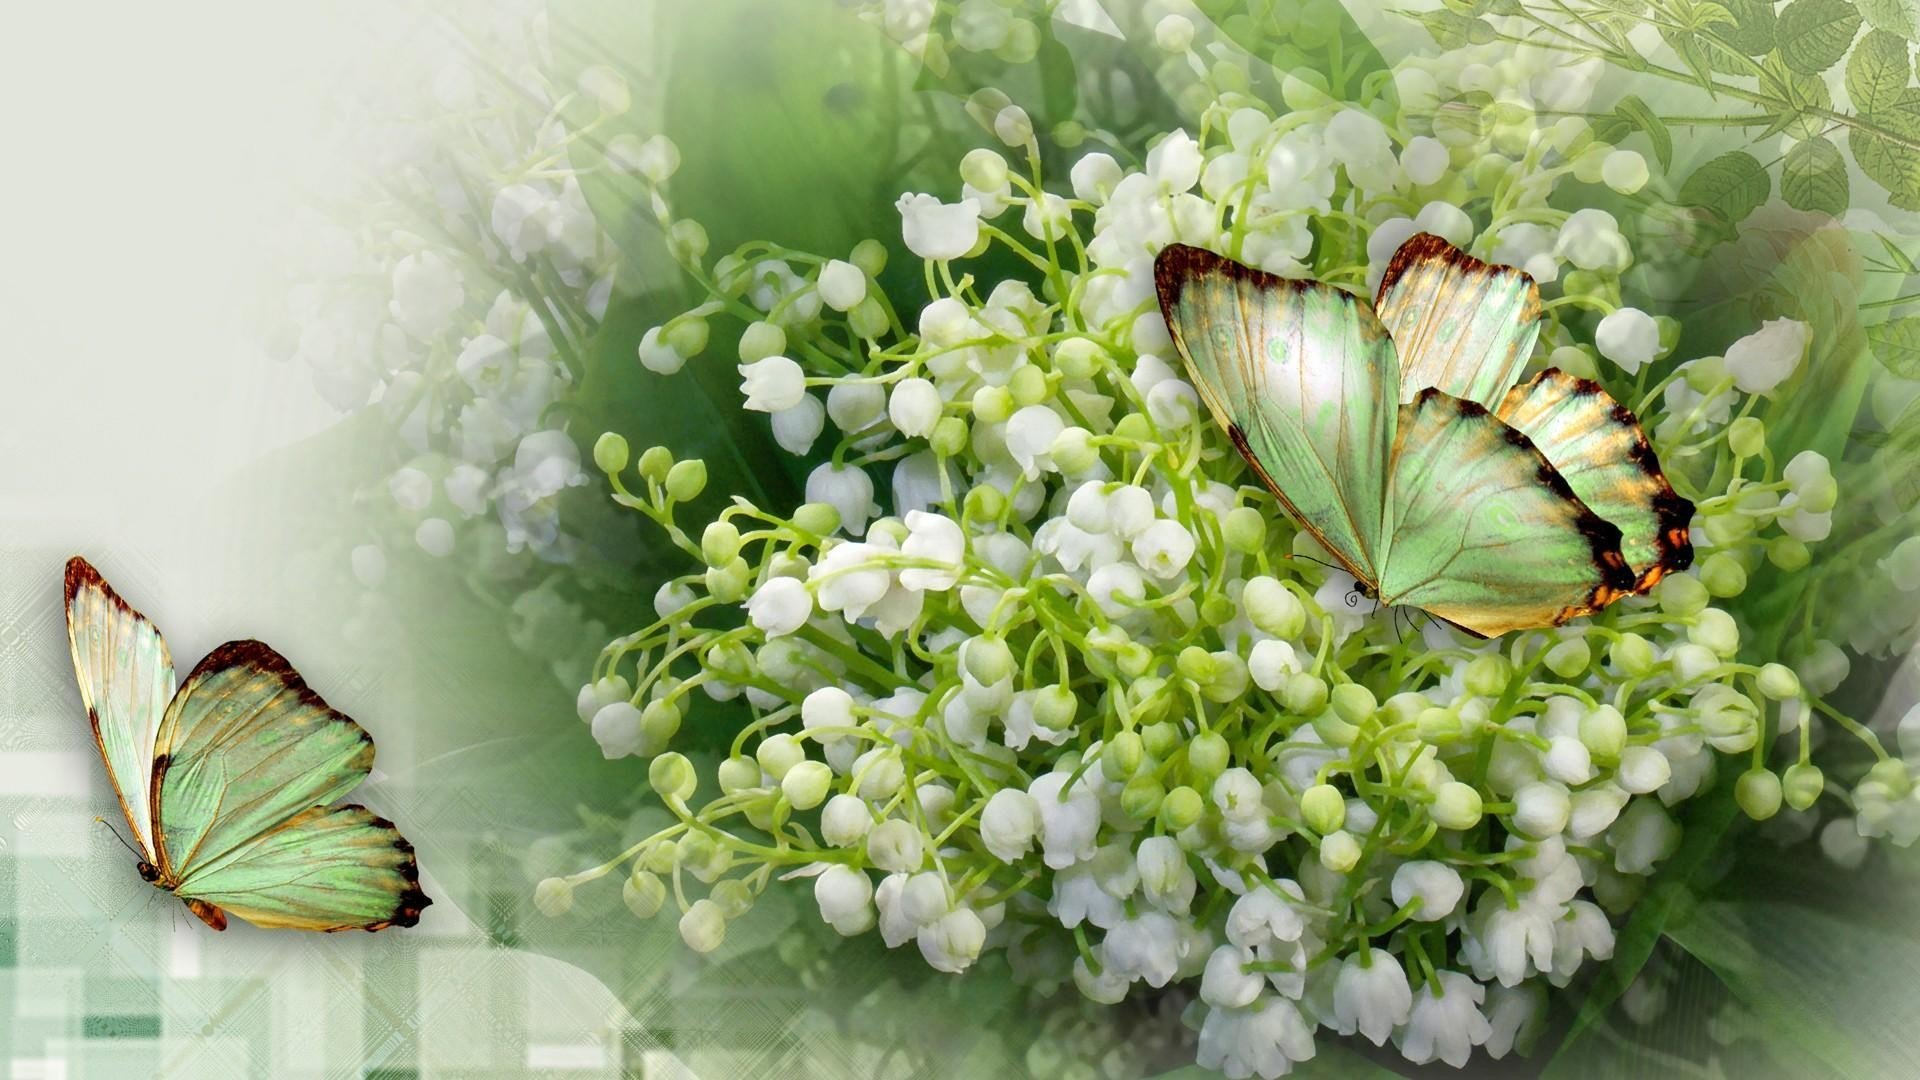 Wallpapers ID:388437